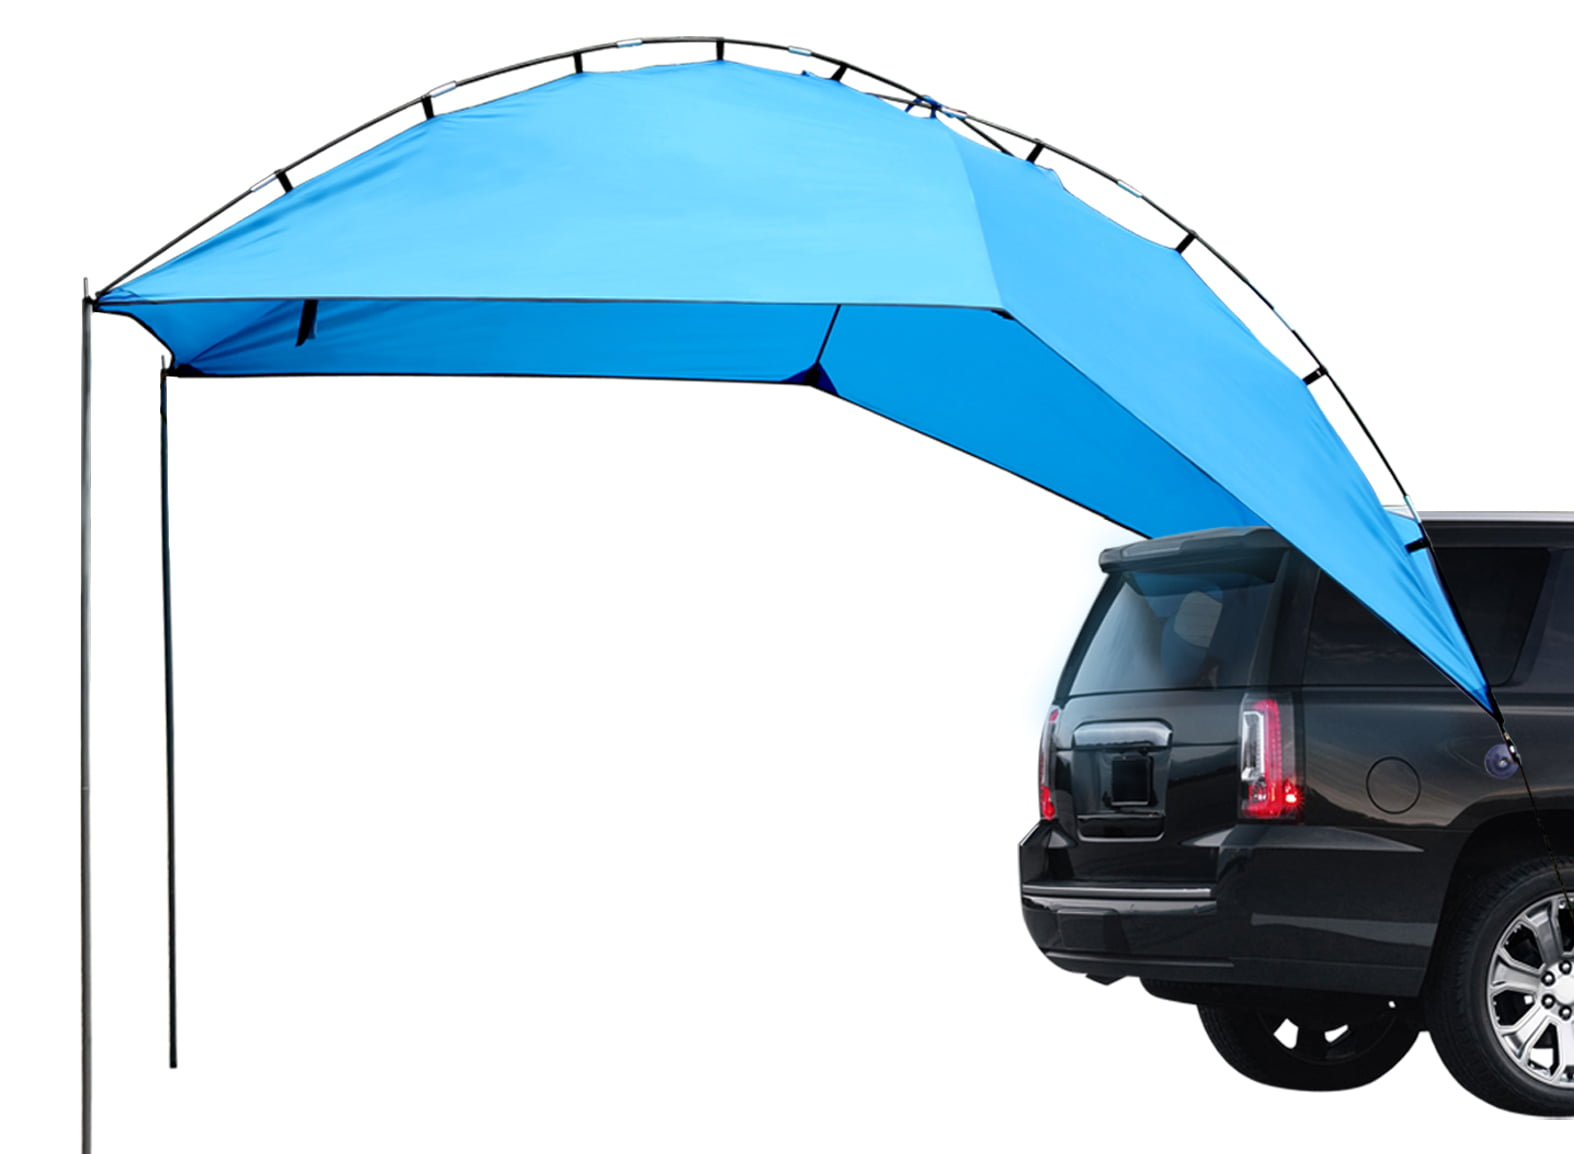 Leader Accessories Easy Set Up Camping SUV Tent Awning Canopy  Sun Shelter Tailgate Tent Beach Tent Suitable... by Leader Accessories